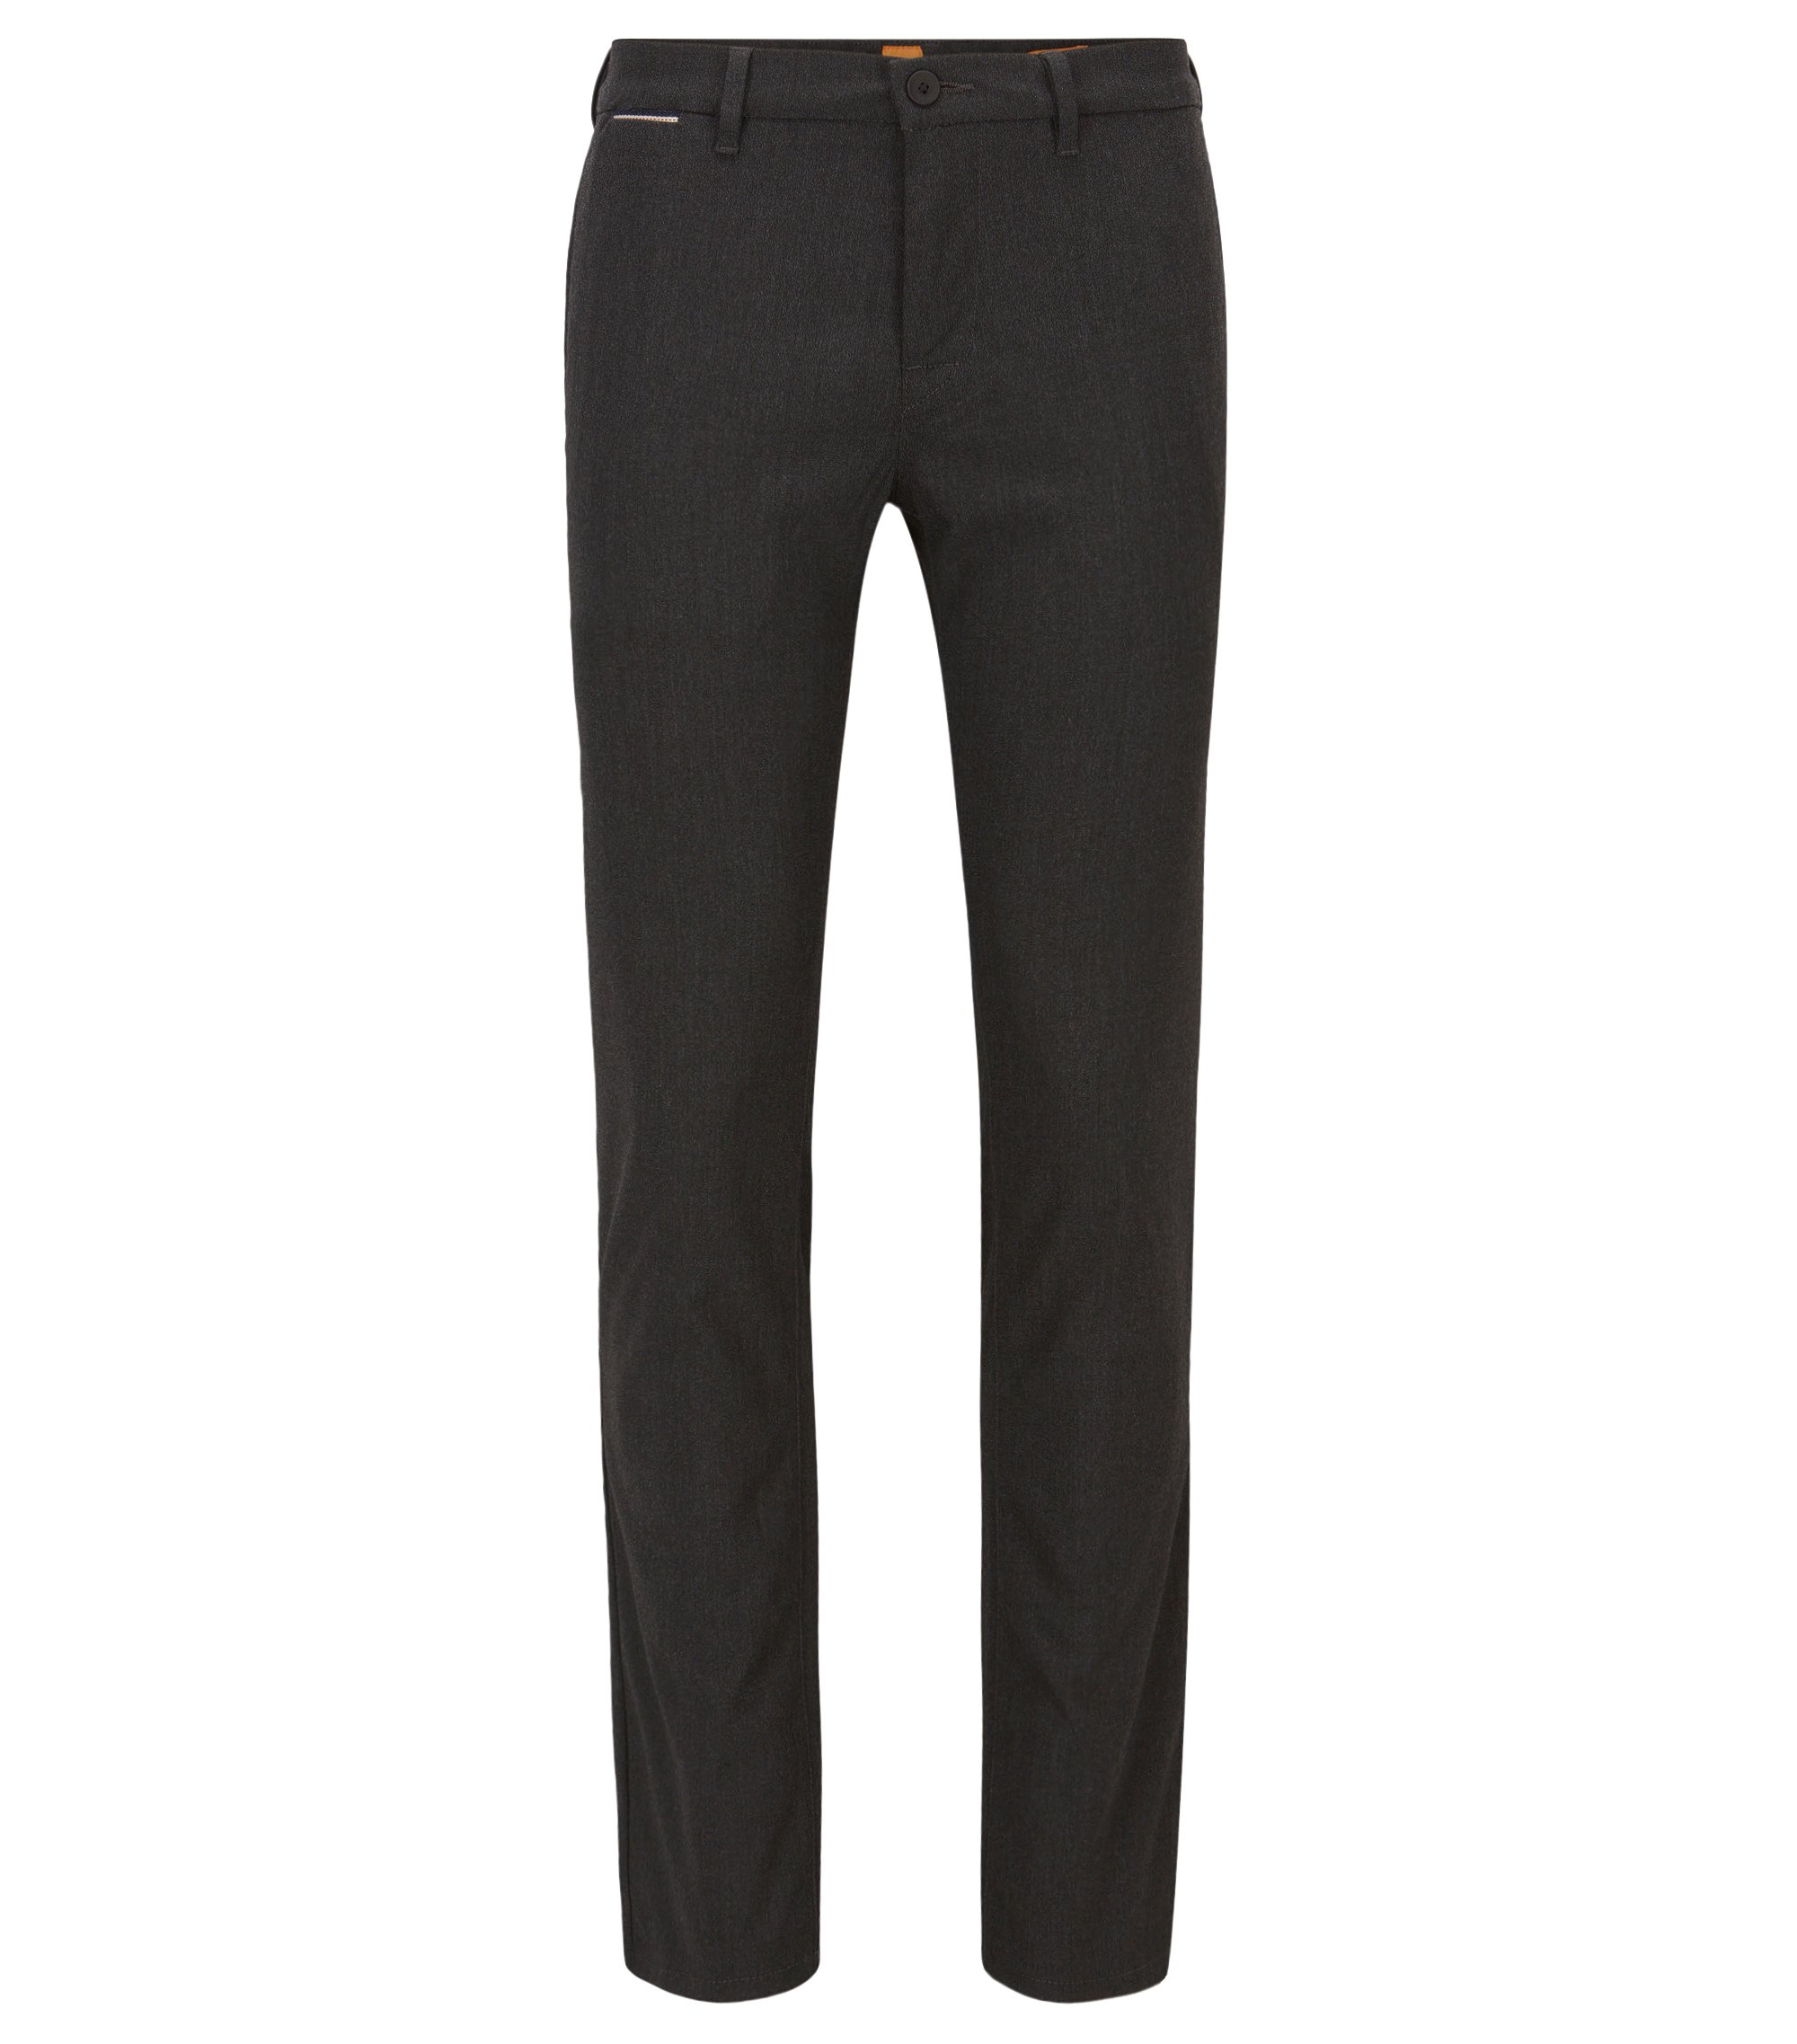 Pantalon Slim Fit en tissu Oxford chiné, Noir